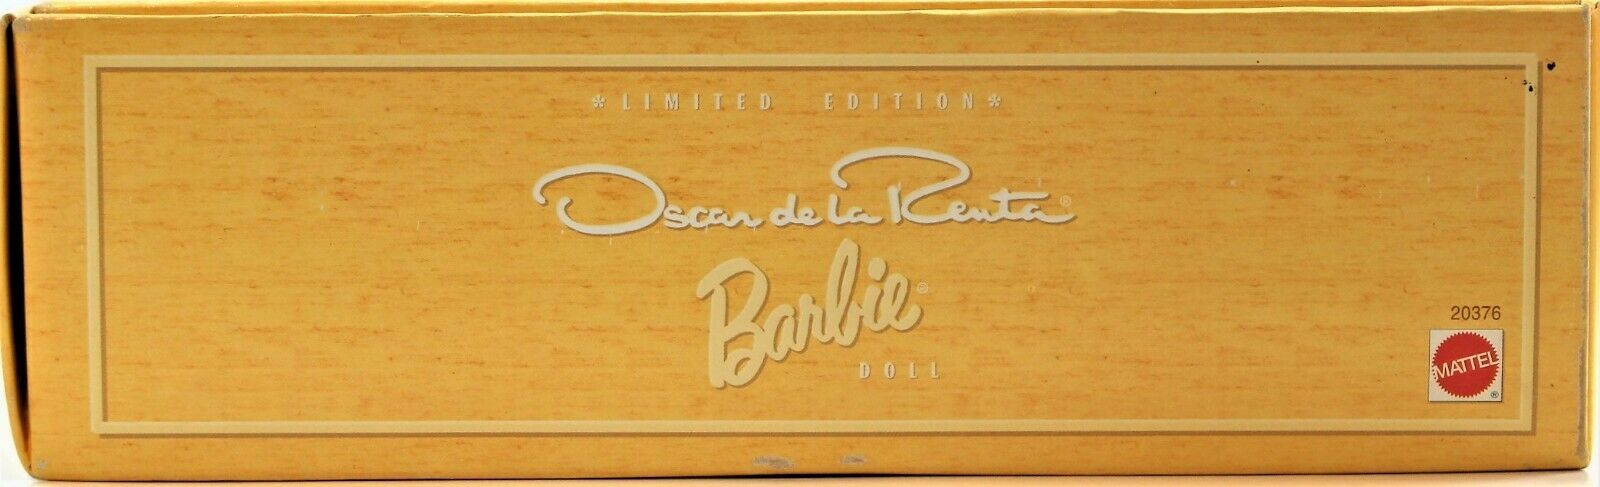 Limited Edition Oscar De La Renta Barbie Nrfb 1998 Collectibles Collection COA image 5